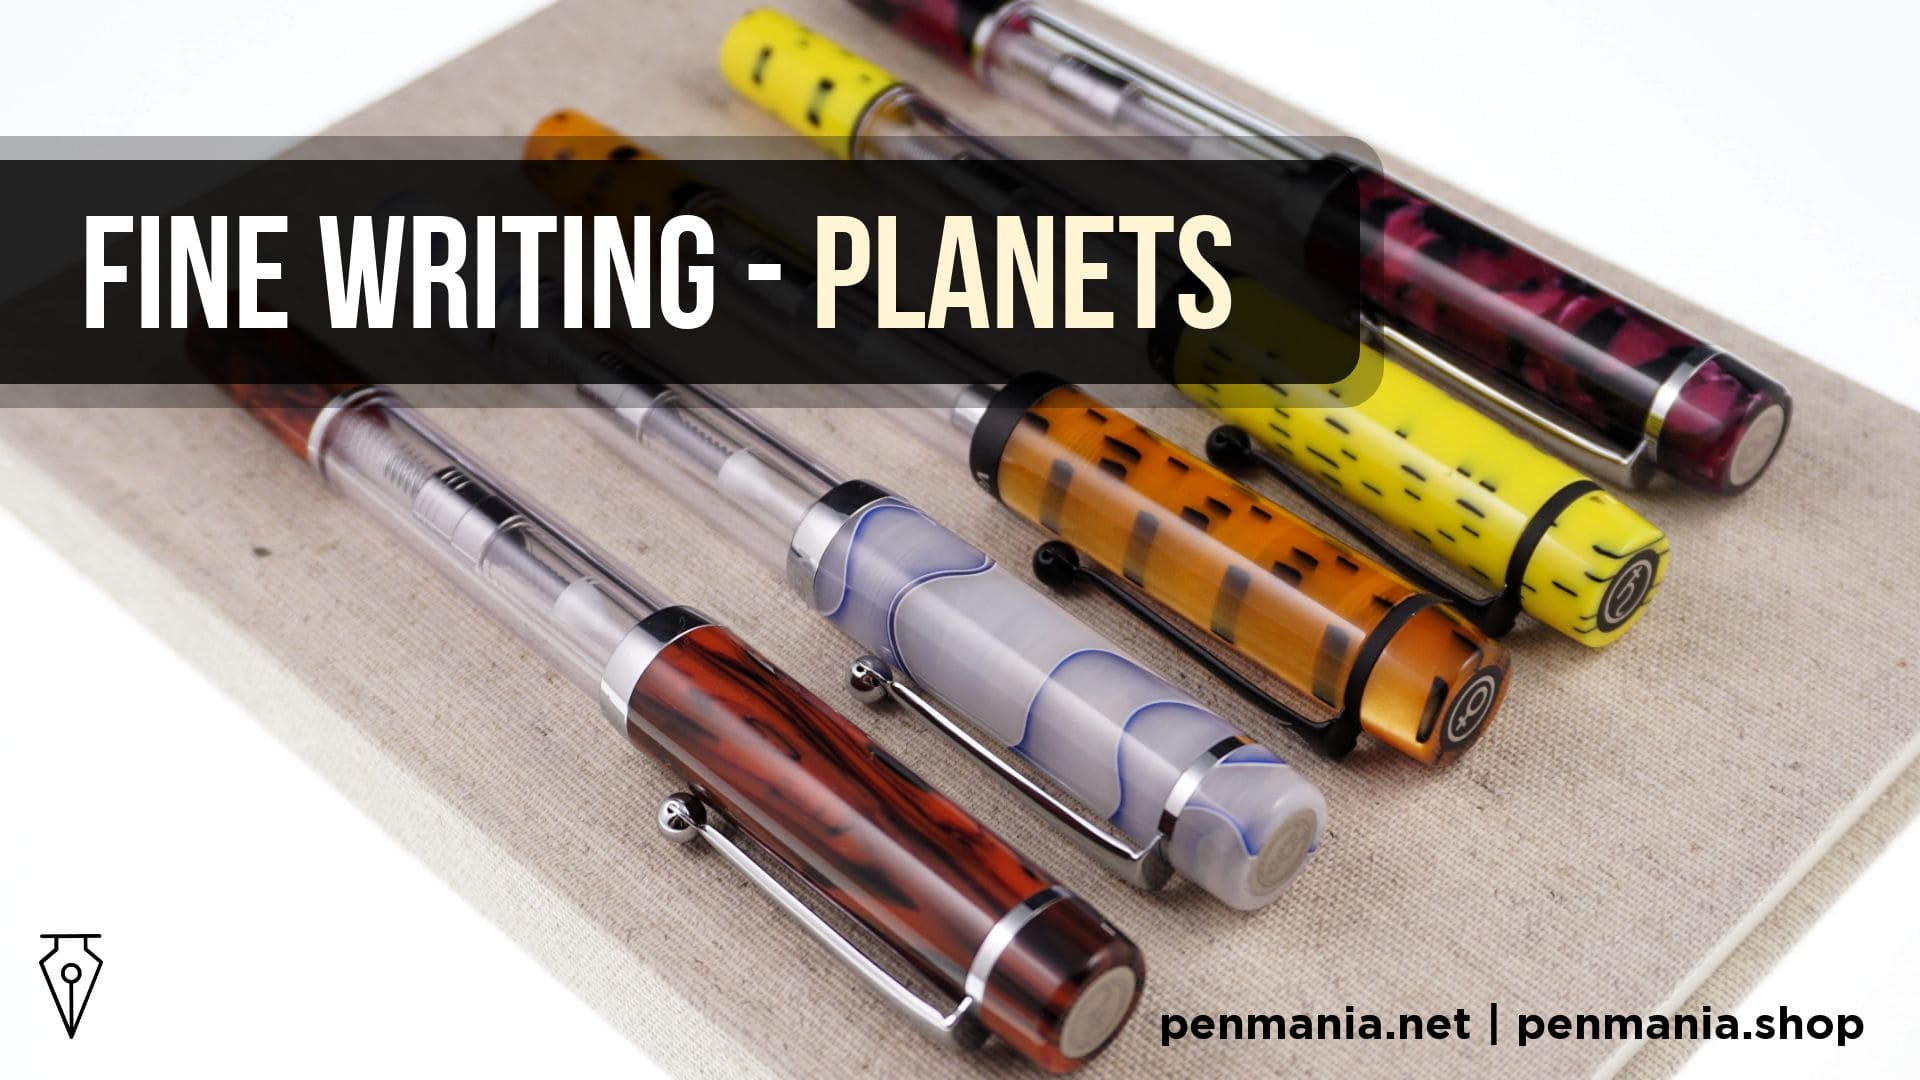 Coperta Video Recenzie Stilou Fine Writing Planets Penmania Shop